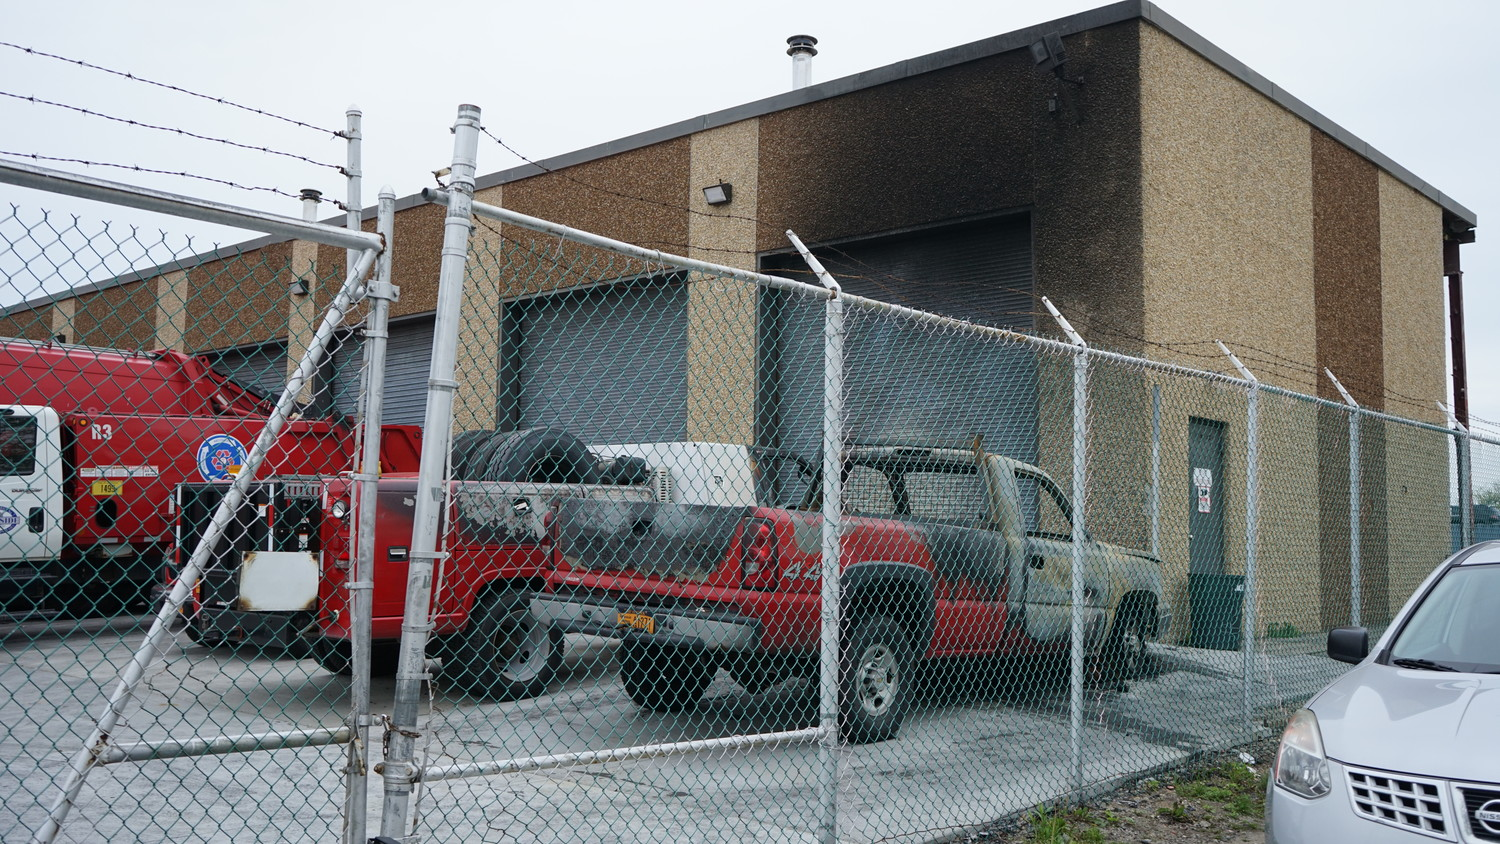 A May 4 photo showing damage done by an April 28 fire at Oceanside Sanitation District No. 7's Mott Street headquarters to two pickup trucks. The Nassau County fire marshal's office confirmed on Oct. 5 that the fire was set intentionally.